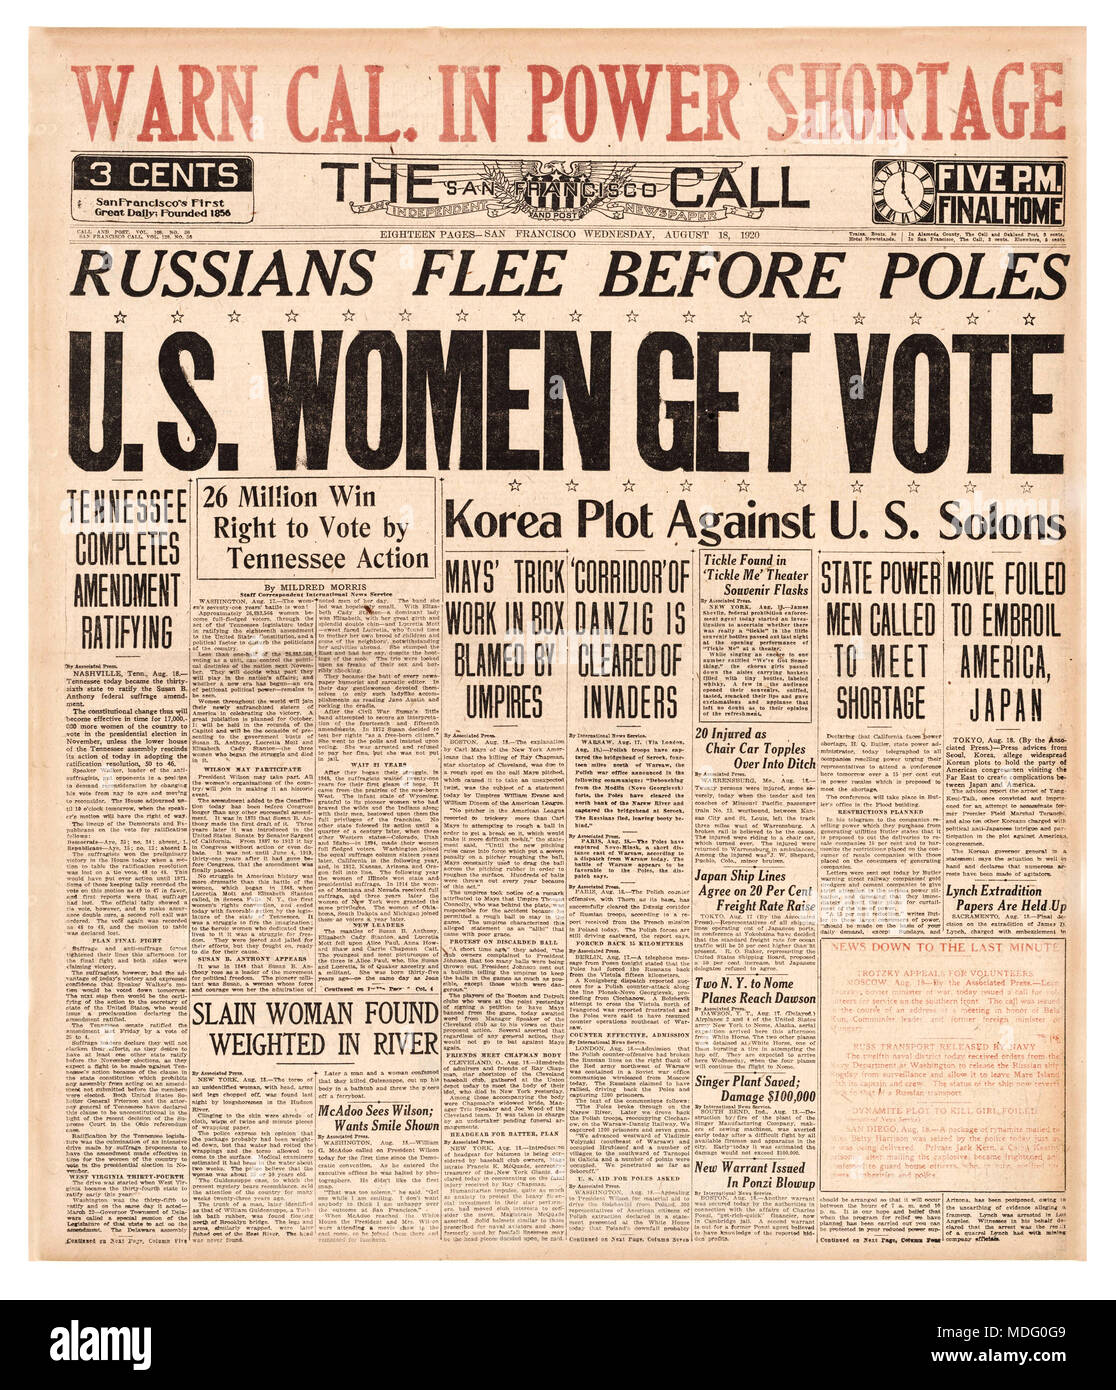 Newspaper Headline Suffrage Vote On Aug 18 1920 Tennessee Became The 36th State To Ratify 19th Amendment US Constitution